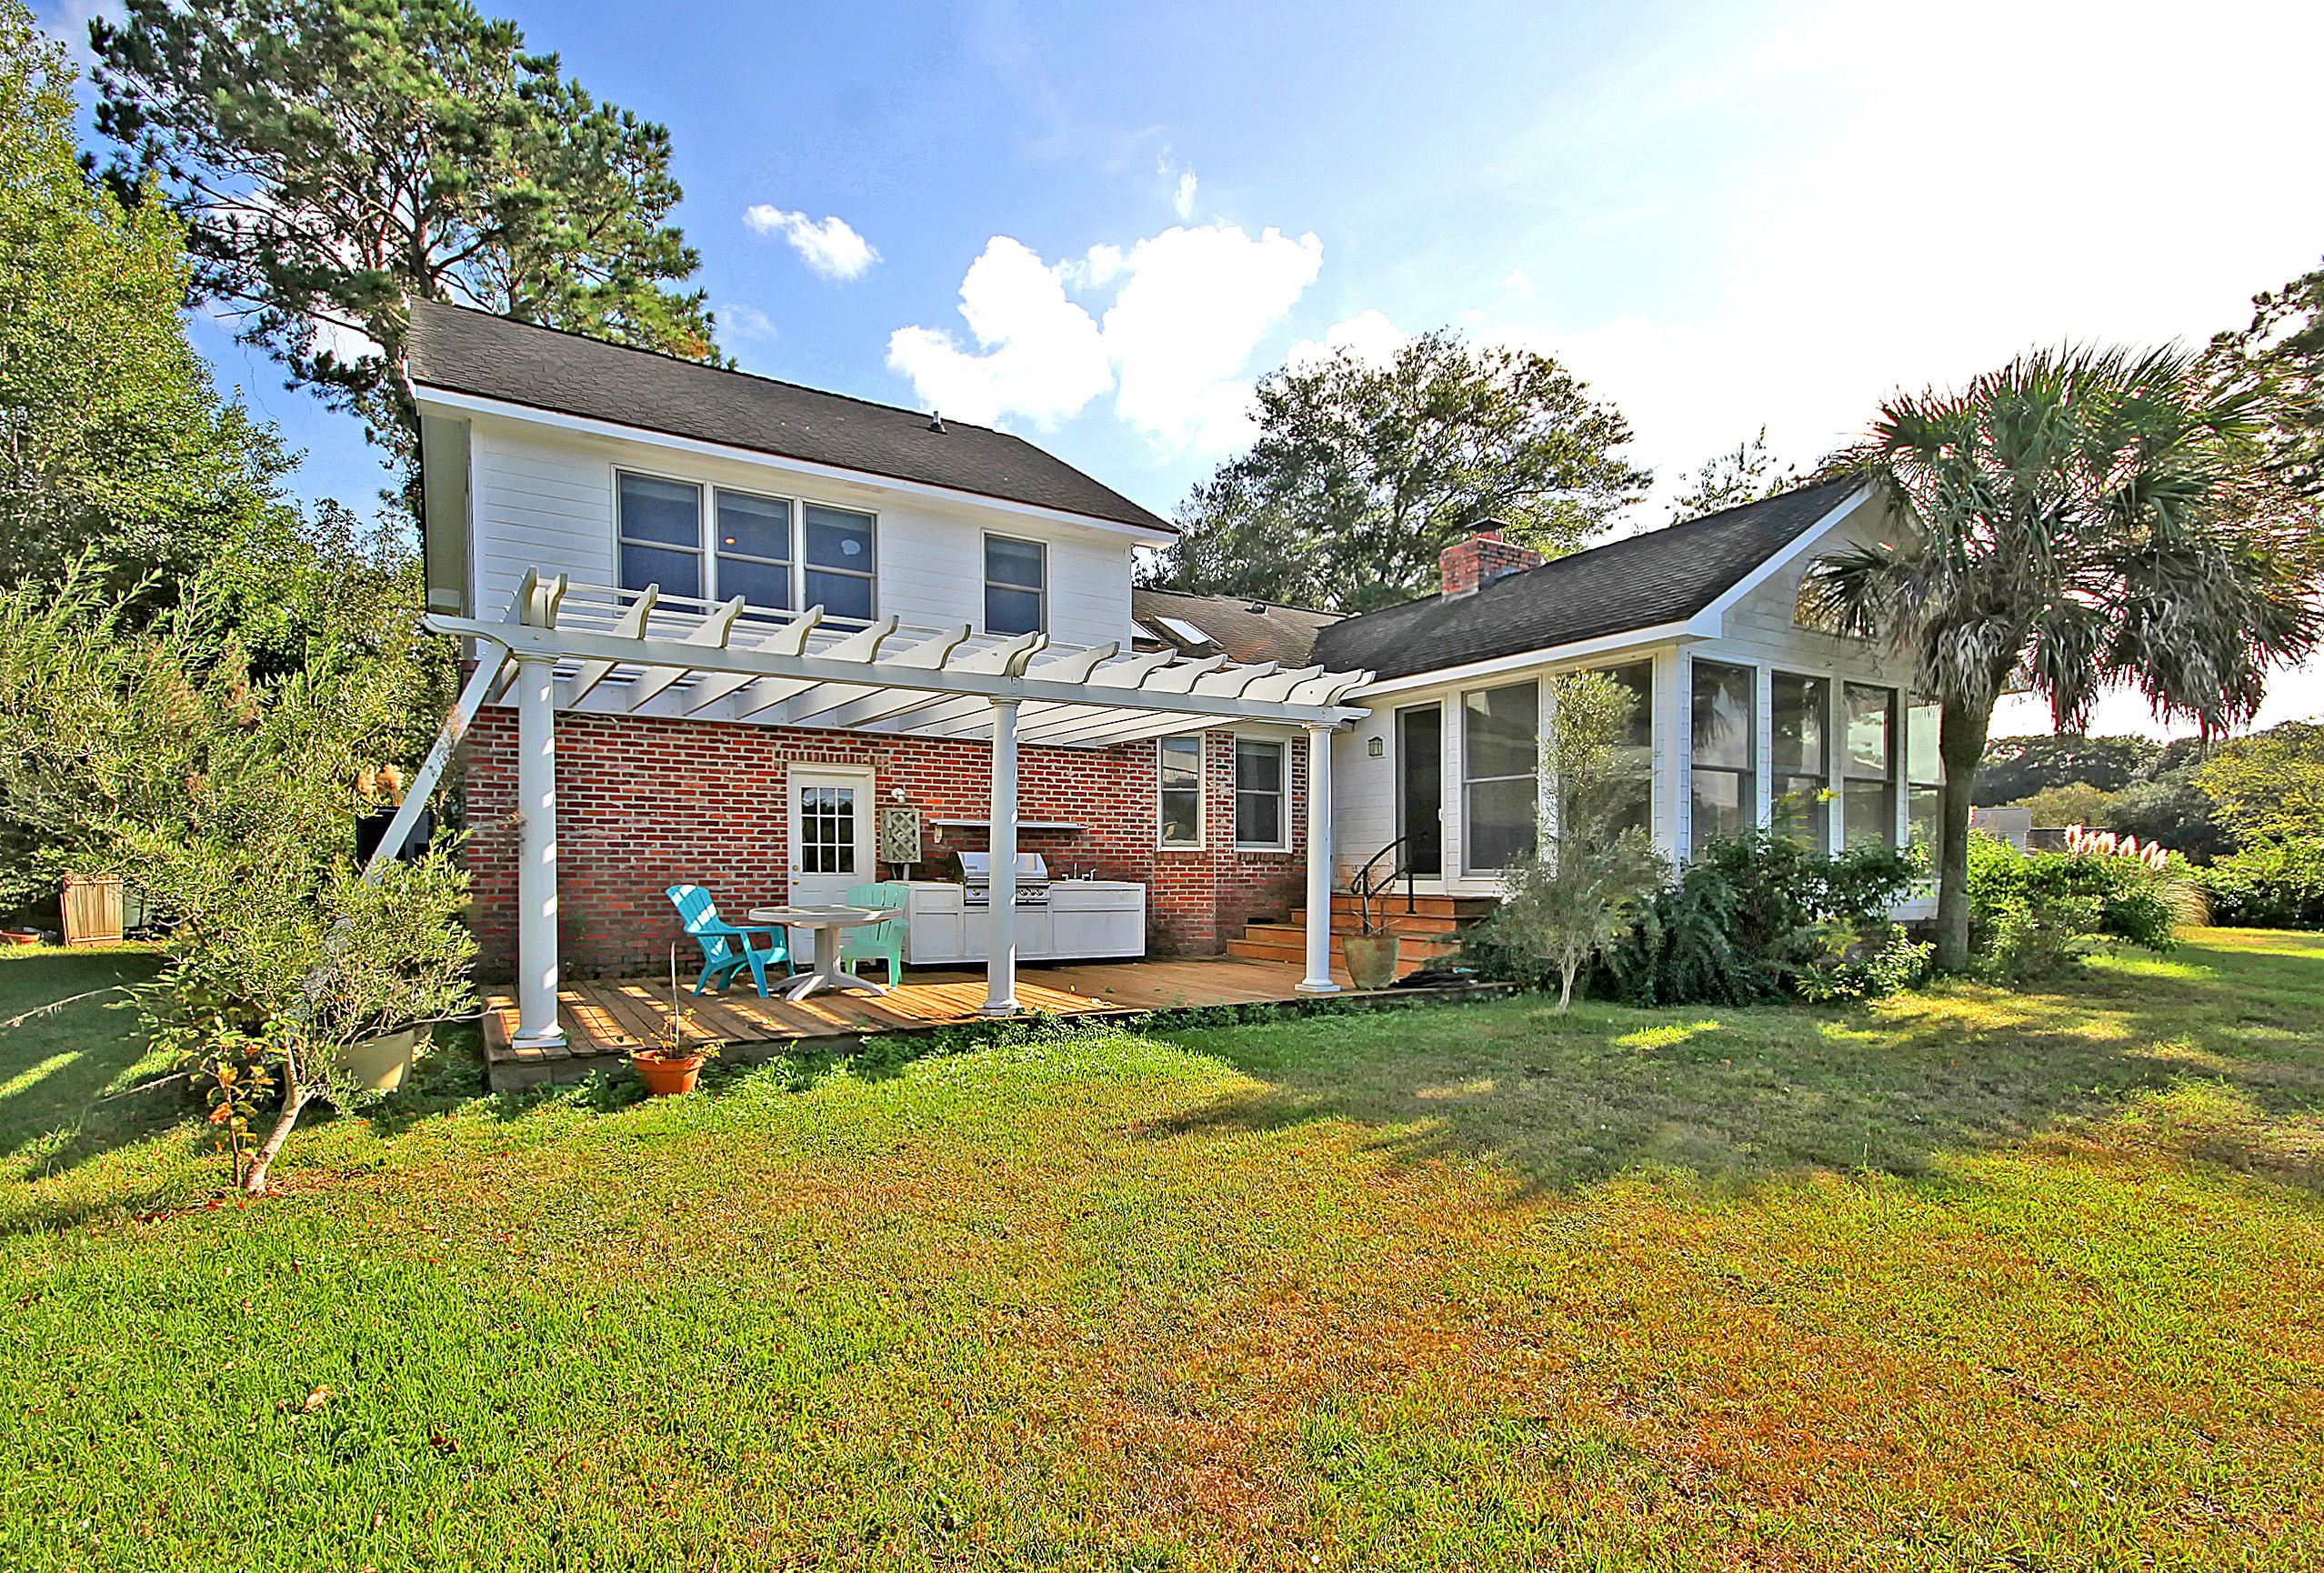 Rivers Point Homes For Sale - 4 Conch, Charleston, SC - 17